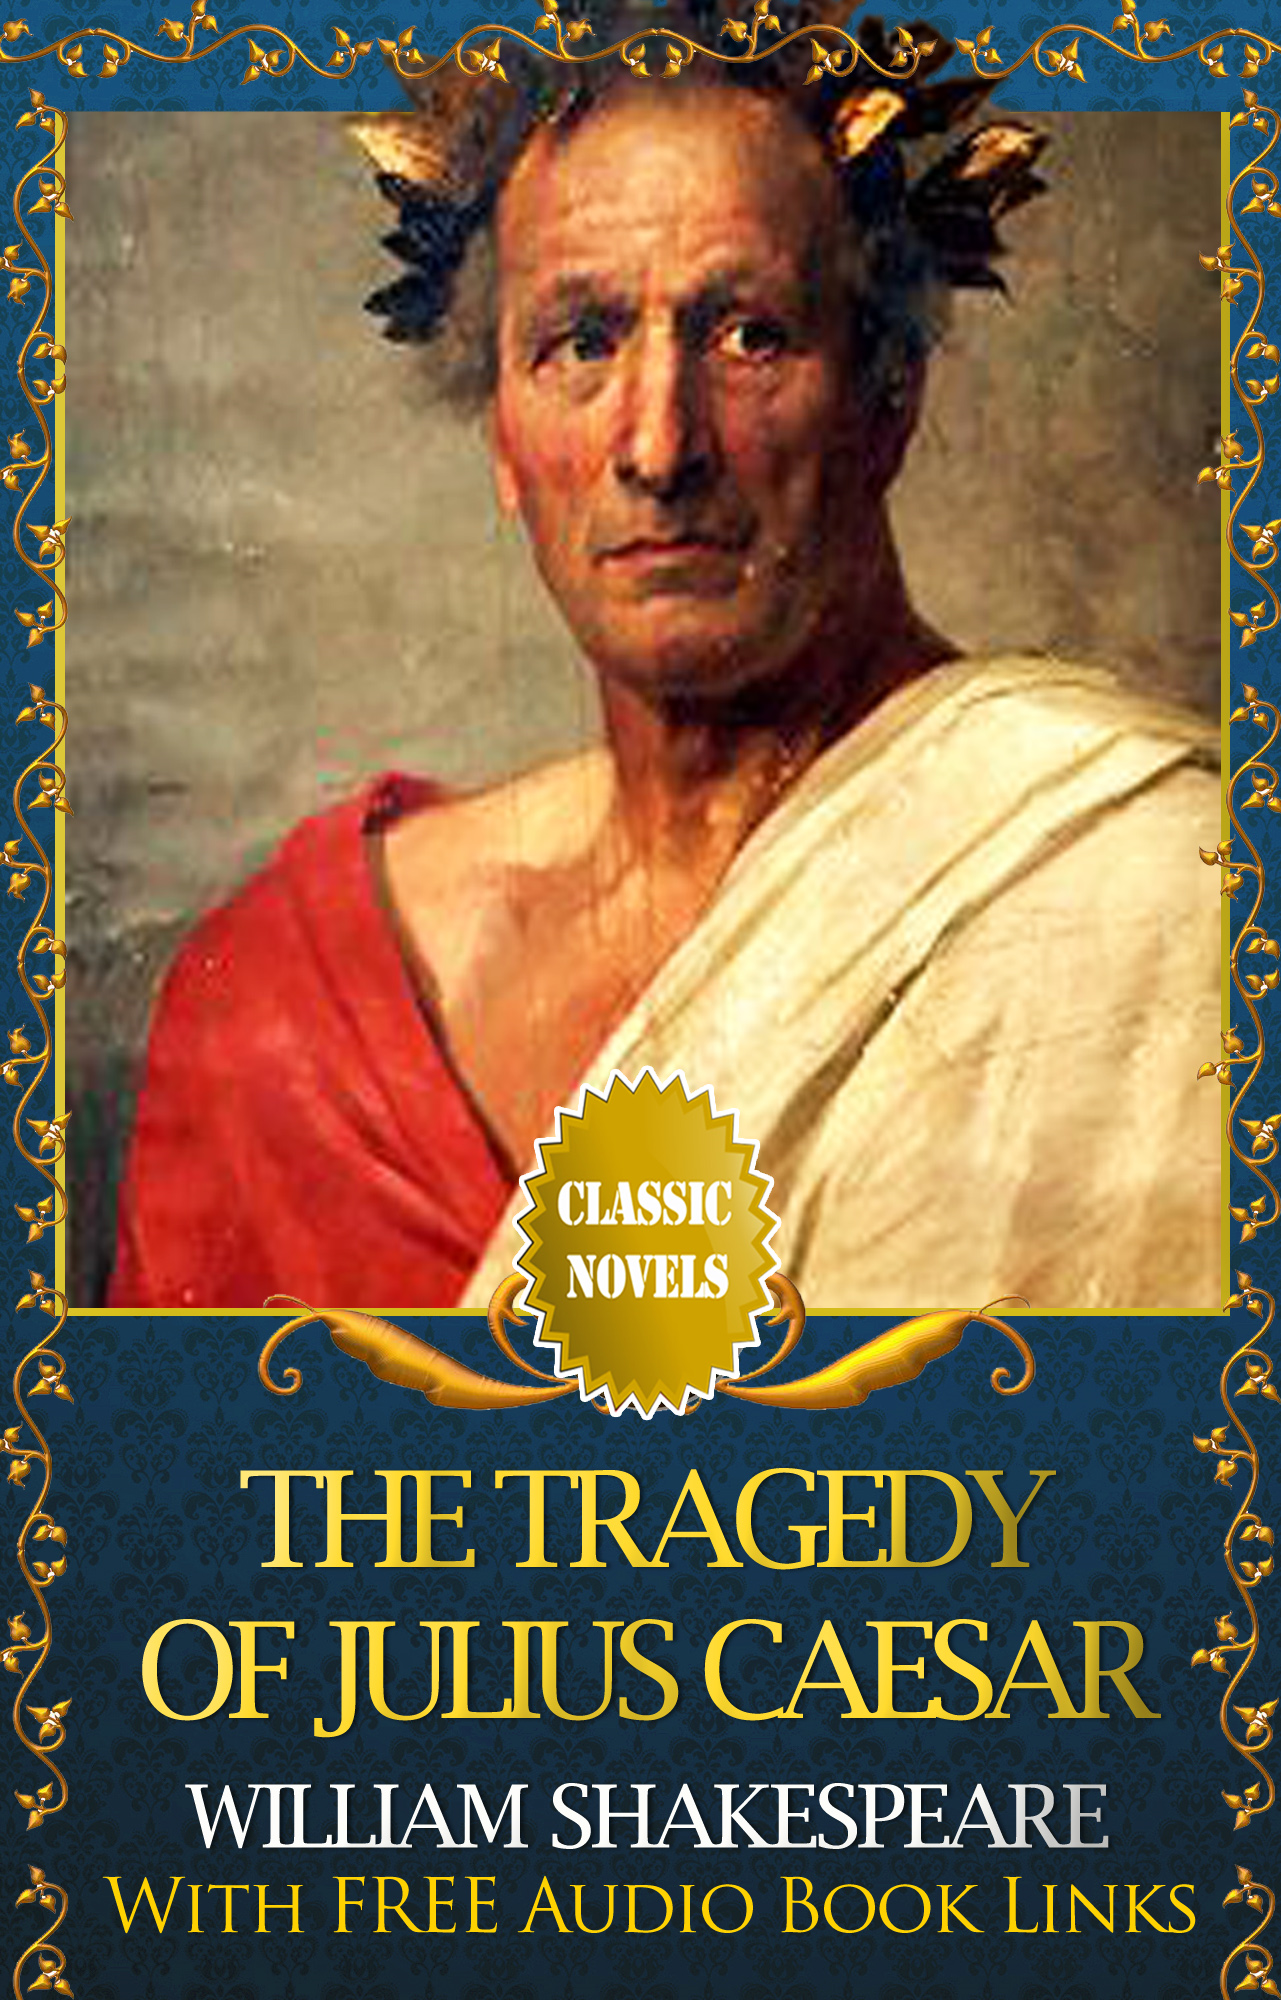 a literary analysis of a tragic hero brutus in the play julius caesar by william shakespeare